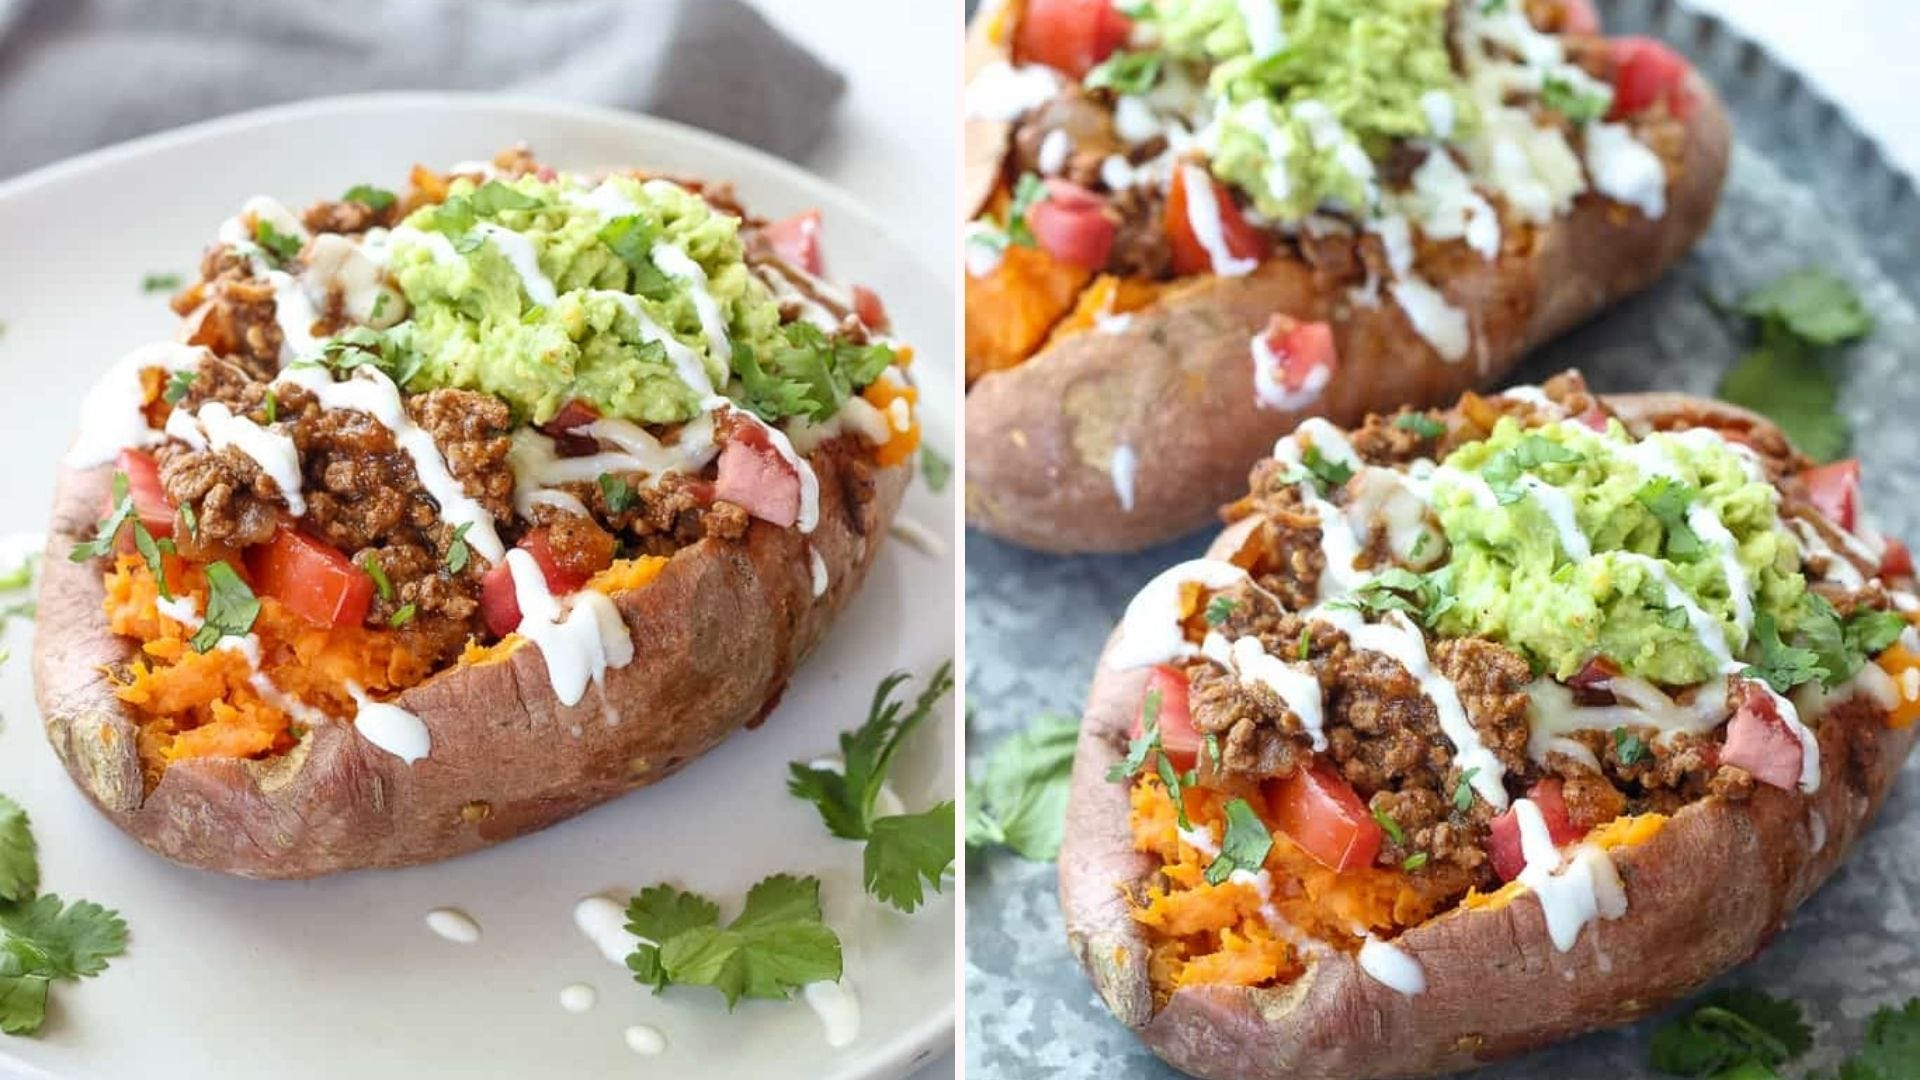 Two images of taco-stuffed sweet potatoes, topped with guacamole, tomatoes, ground beef and sour cream drizzle.